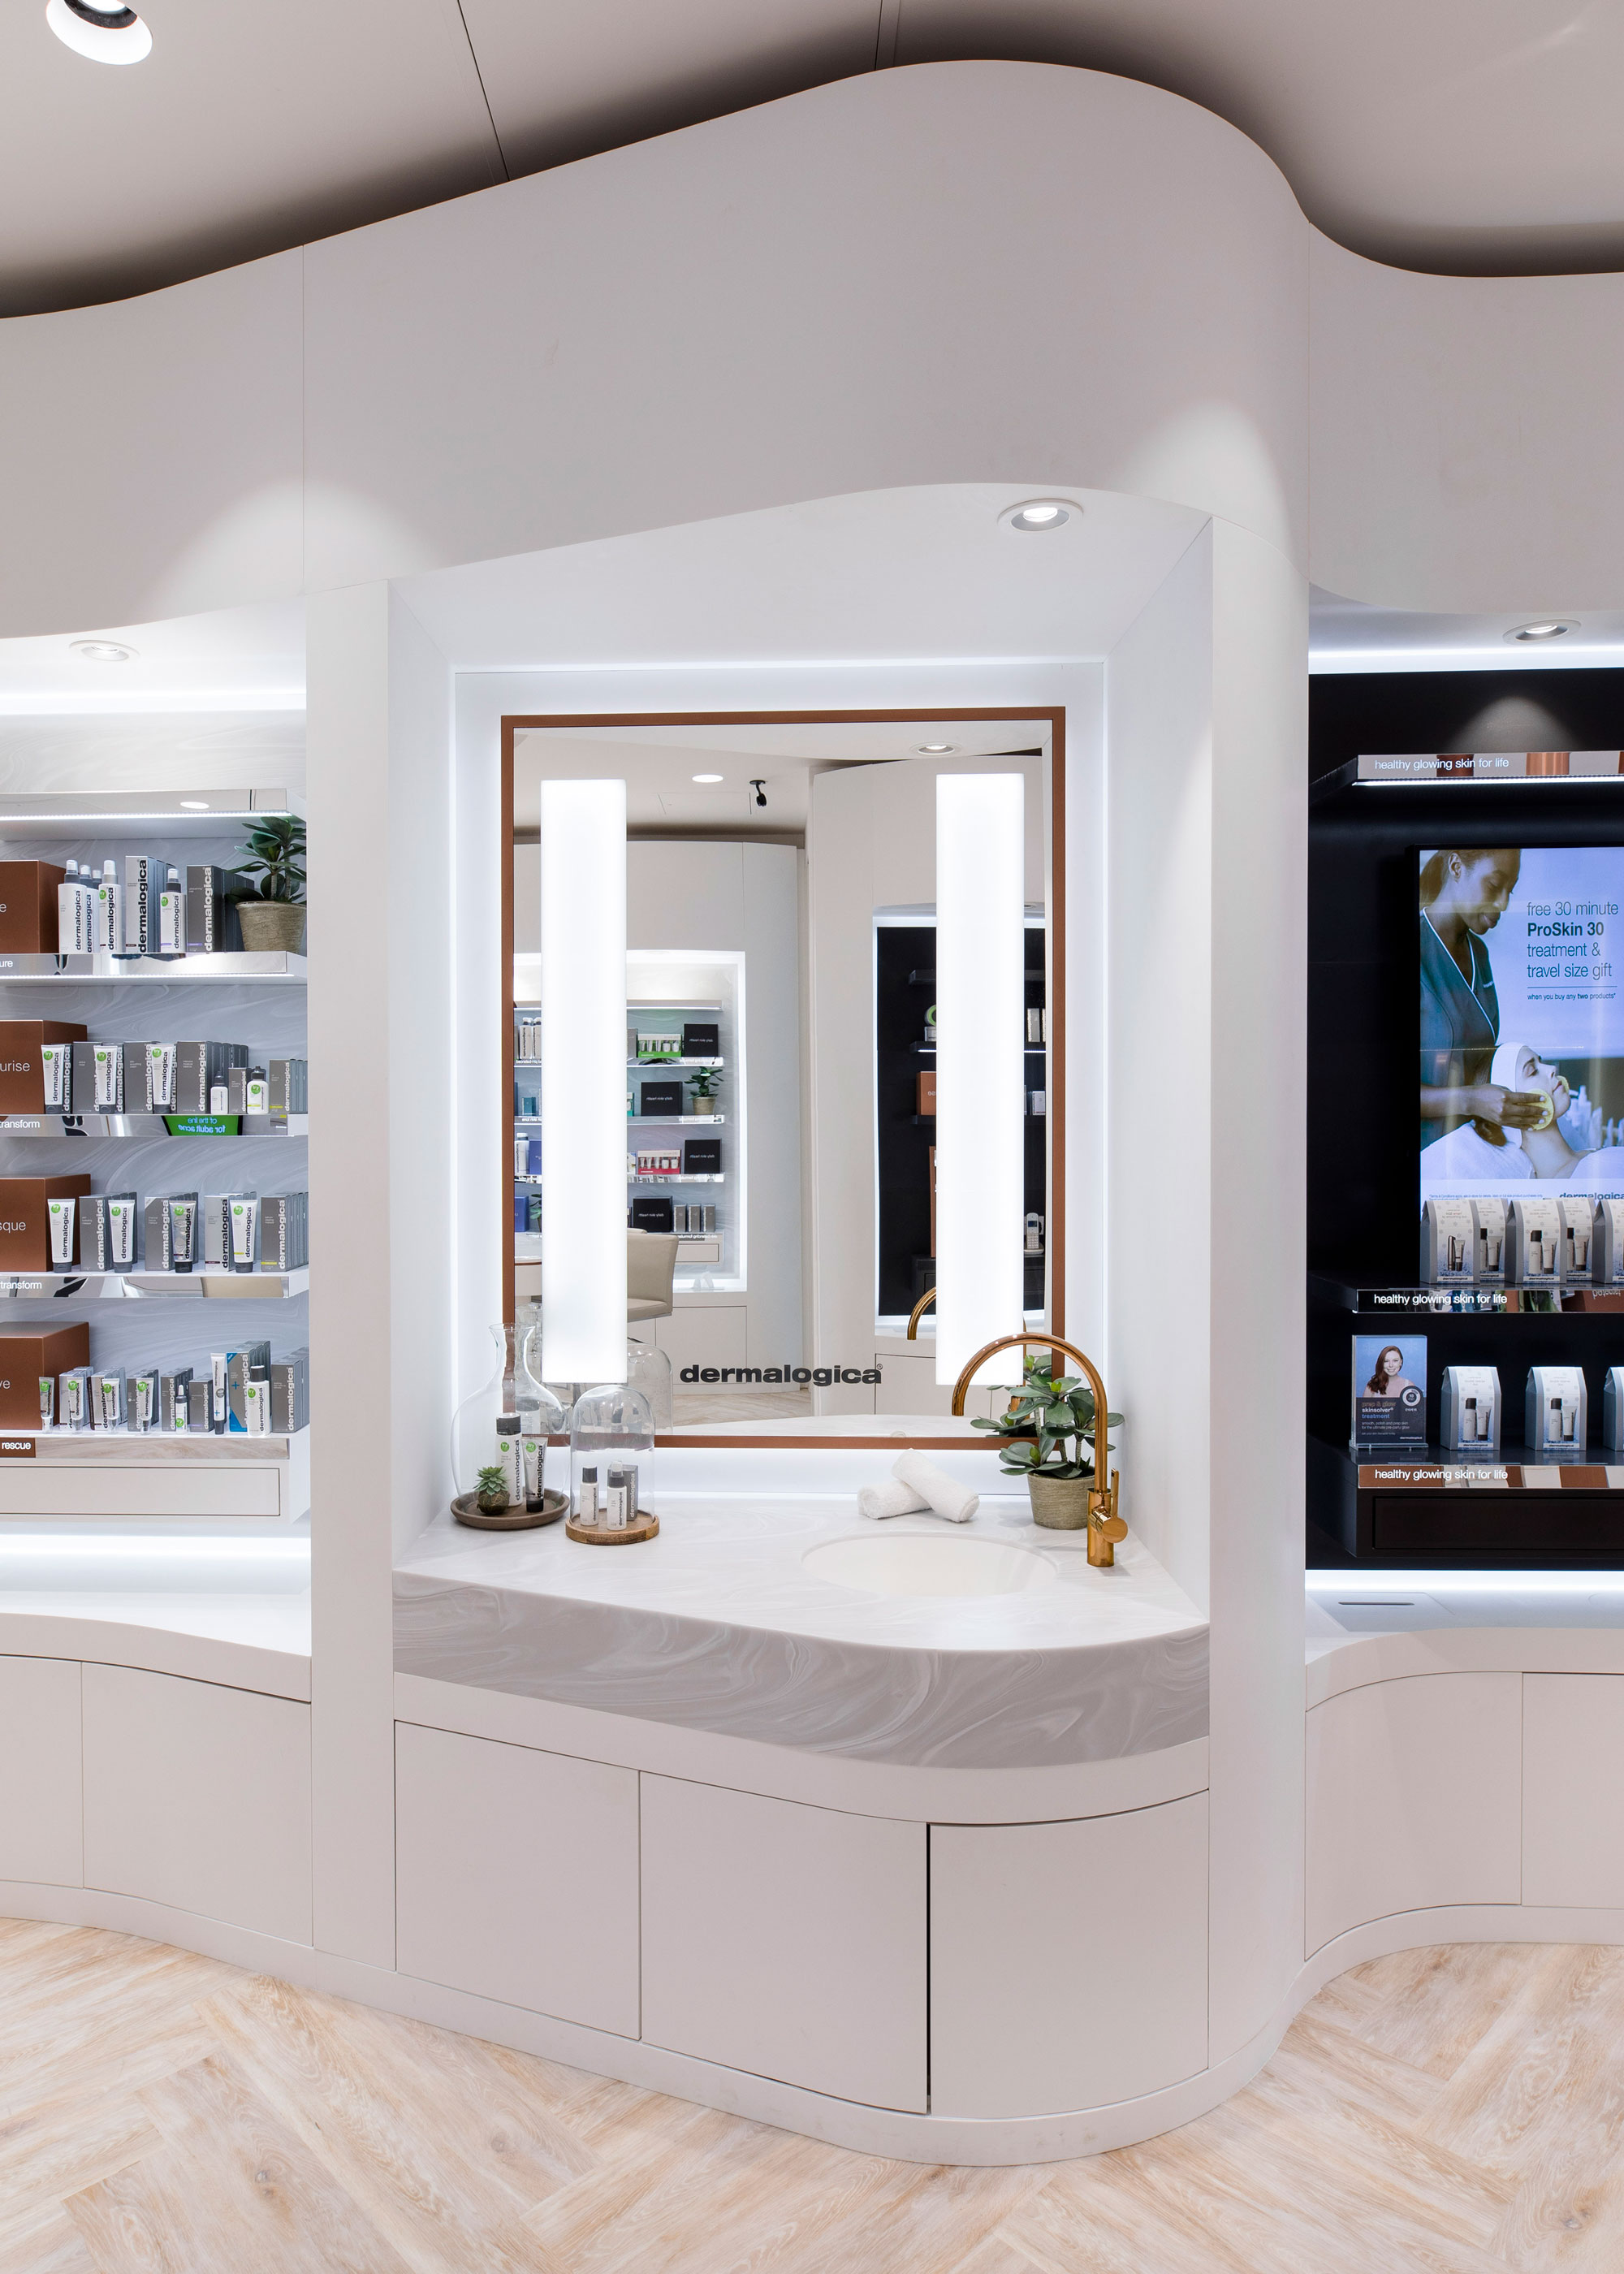 Dermalogica Flagship Store Uses Corian 174 Design To Create An Exclusive And